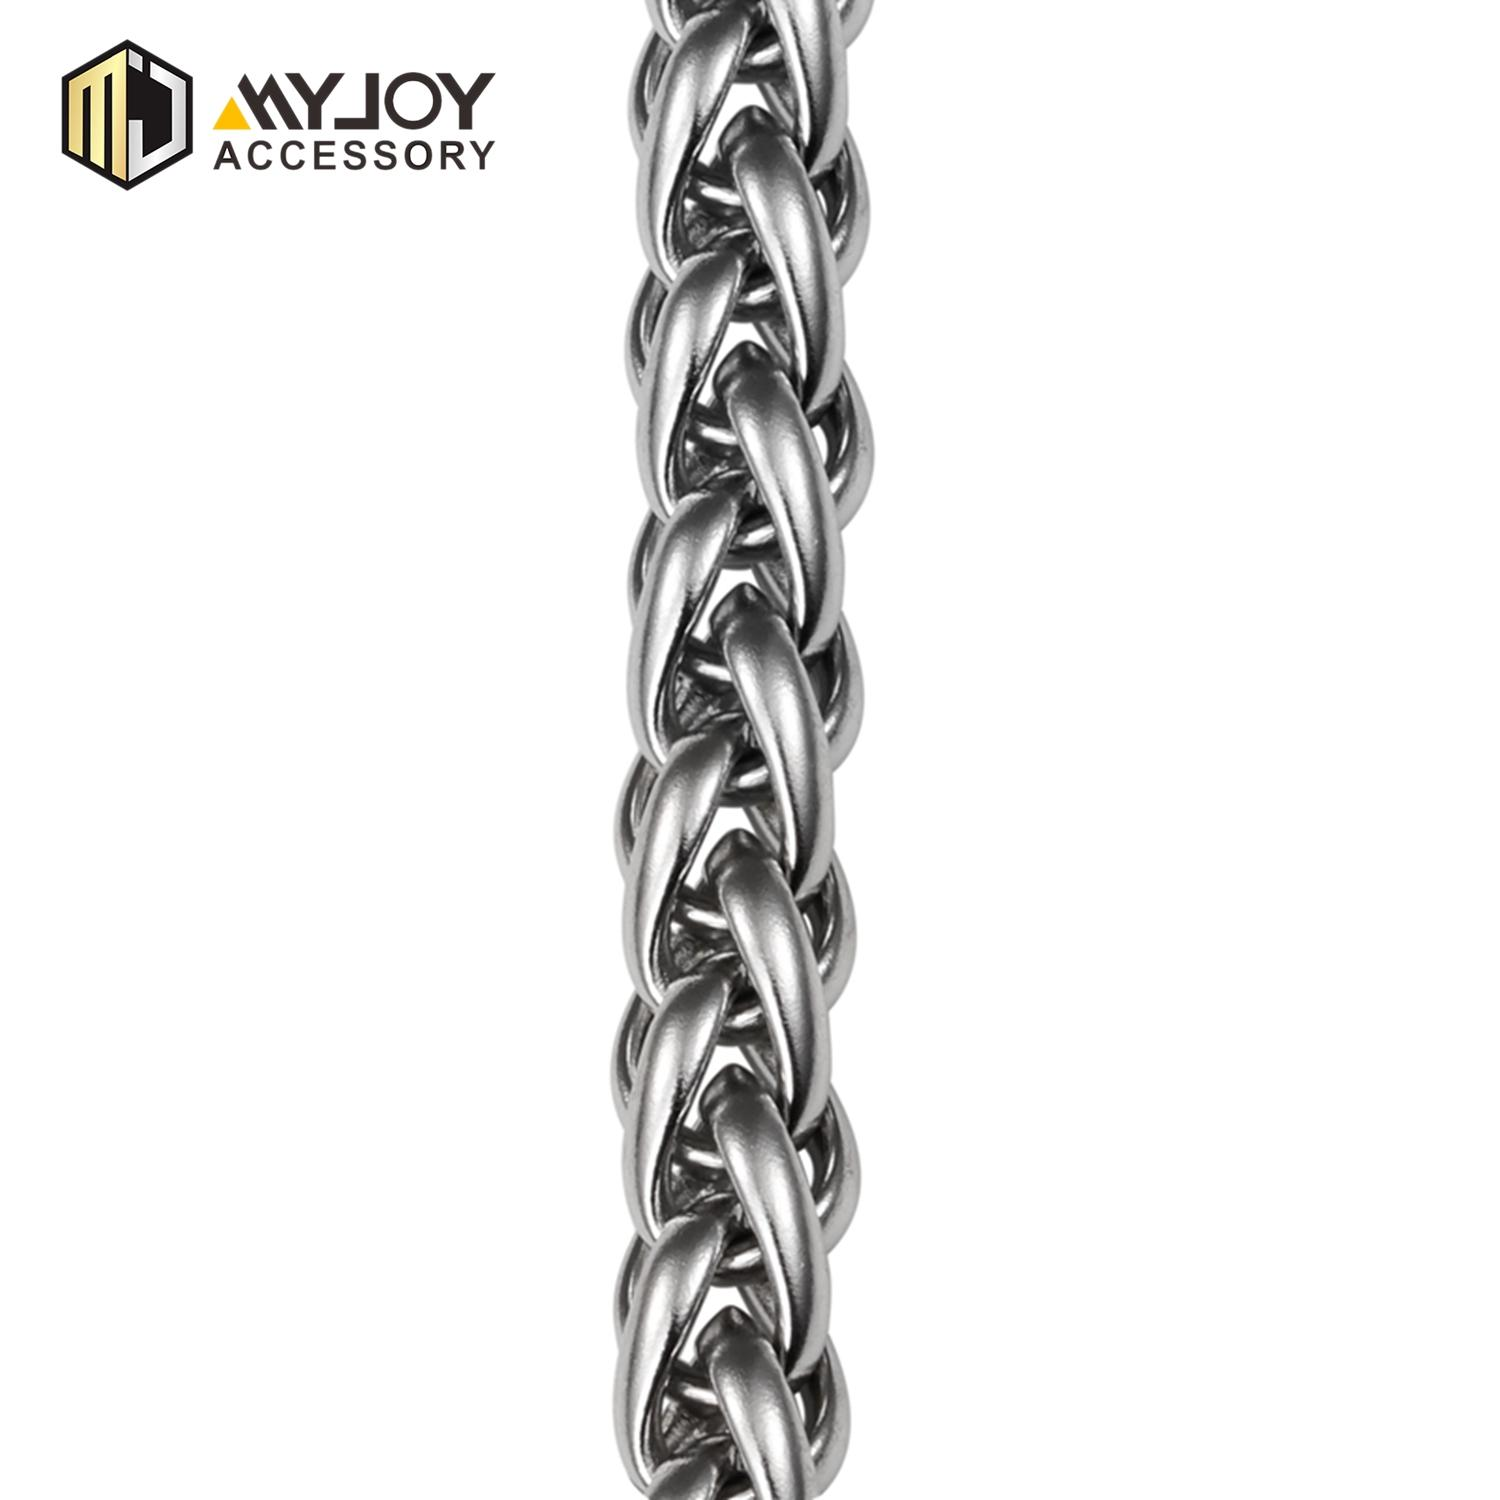 MYJOY gold purse chain stylish for bags-1